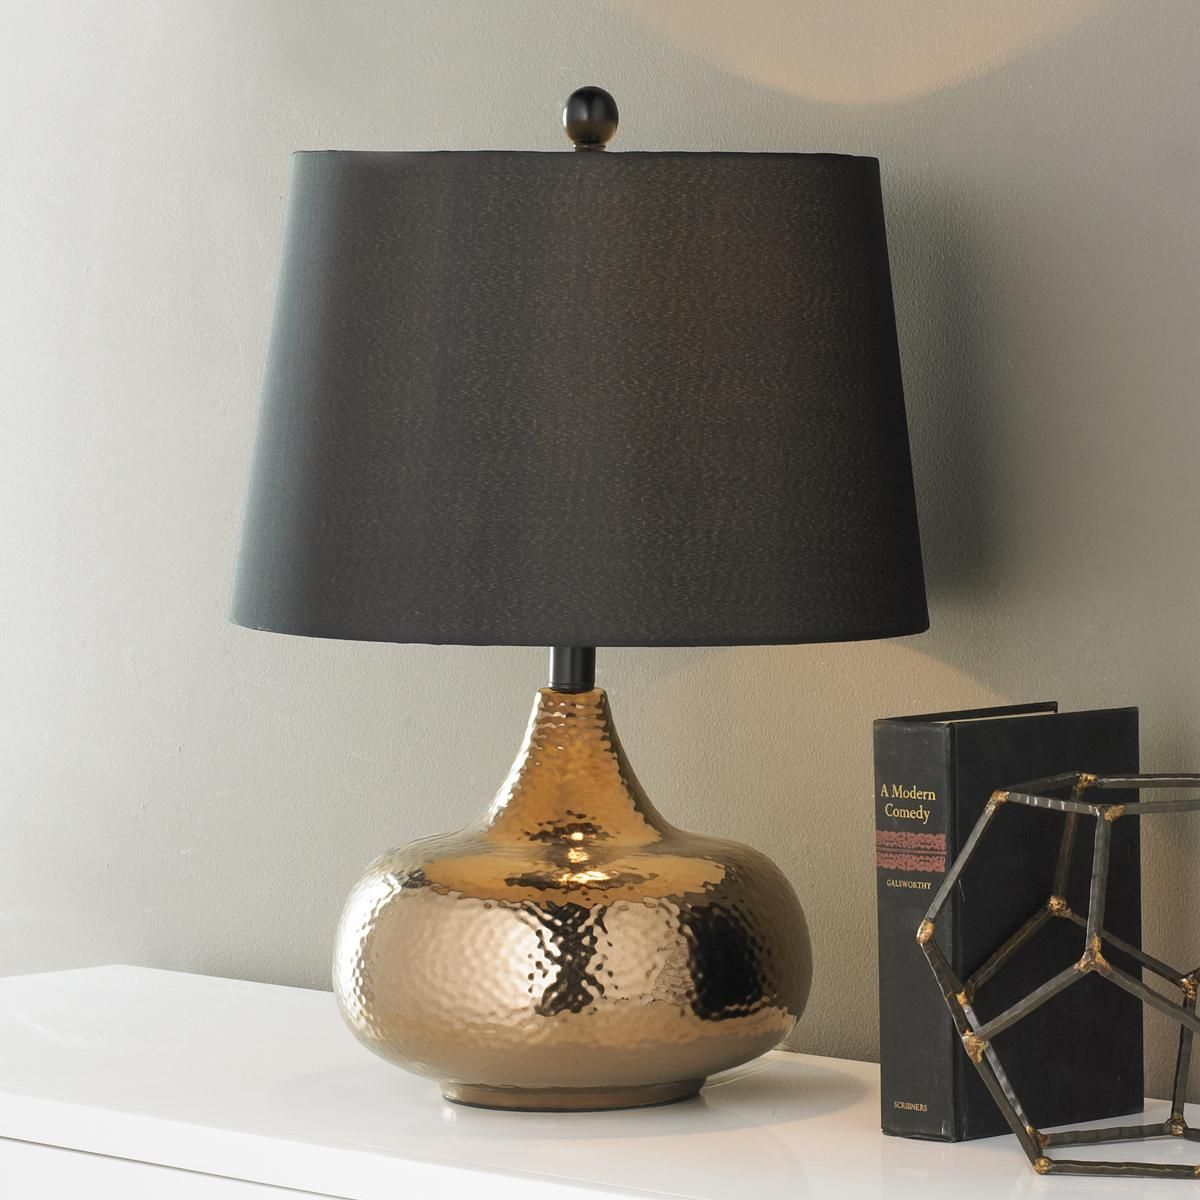 Hammered Bronze Bulb Table Lamp | Table lamps: dress up ...